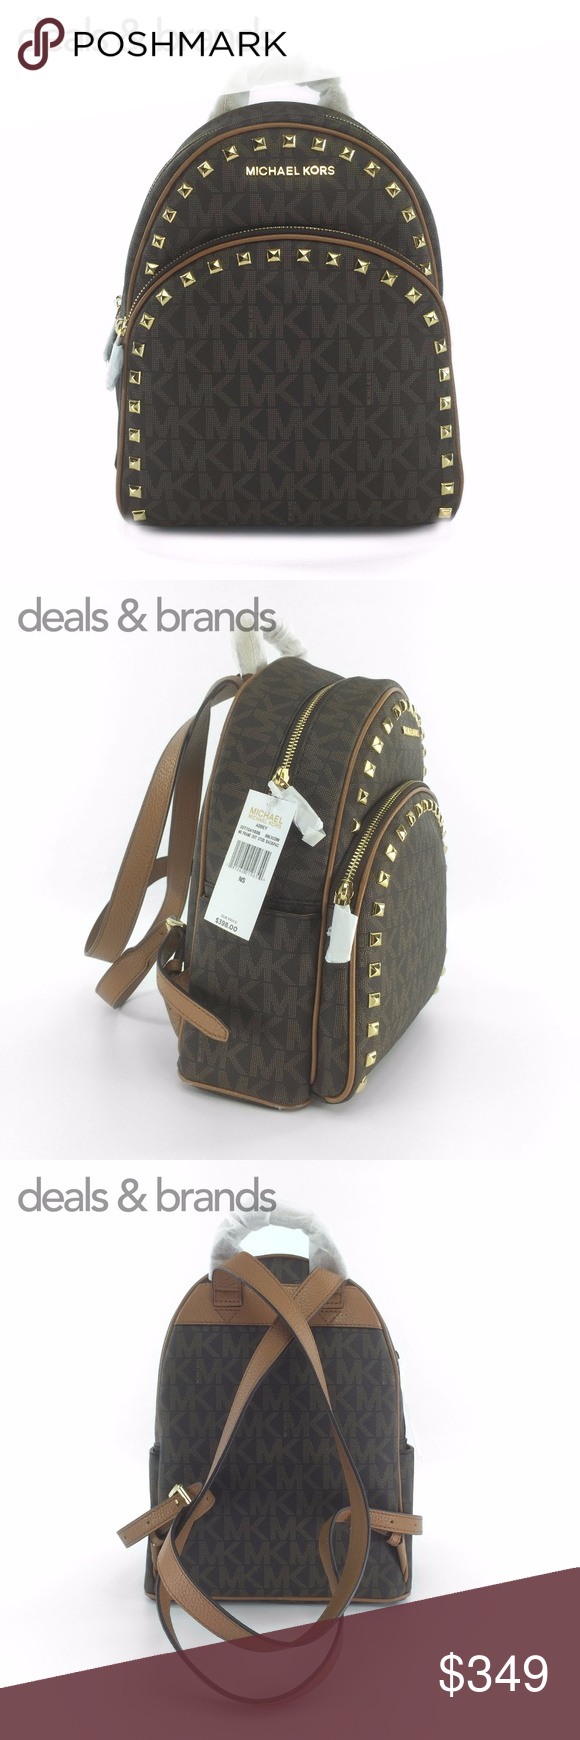 328c8db4a307 NWT MICHAEL KORS Abbey Medium Studded Backpack MICHAEL KORS ABBEY MEDIUM  FRAME OUT STUDDED BACKPACK IN